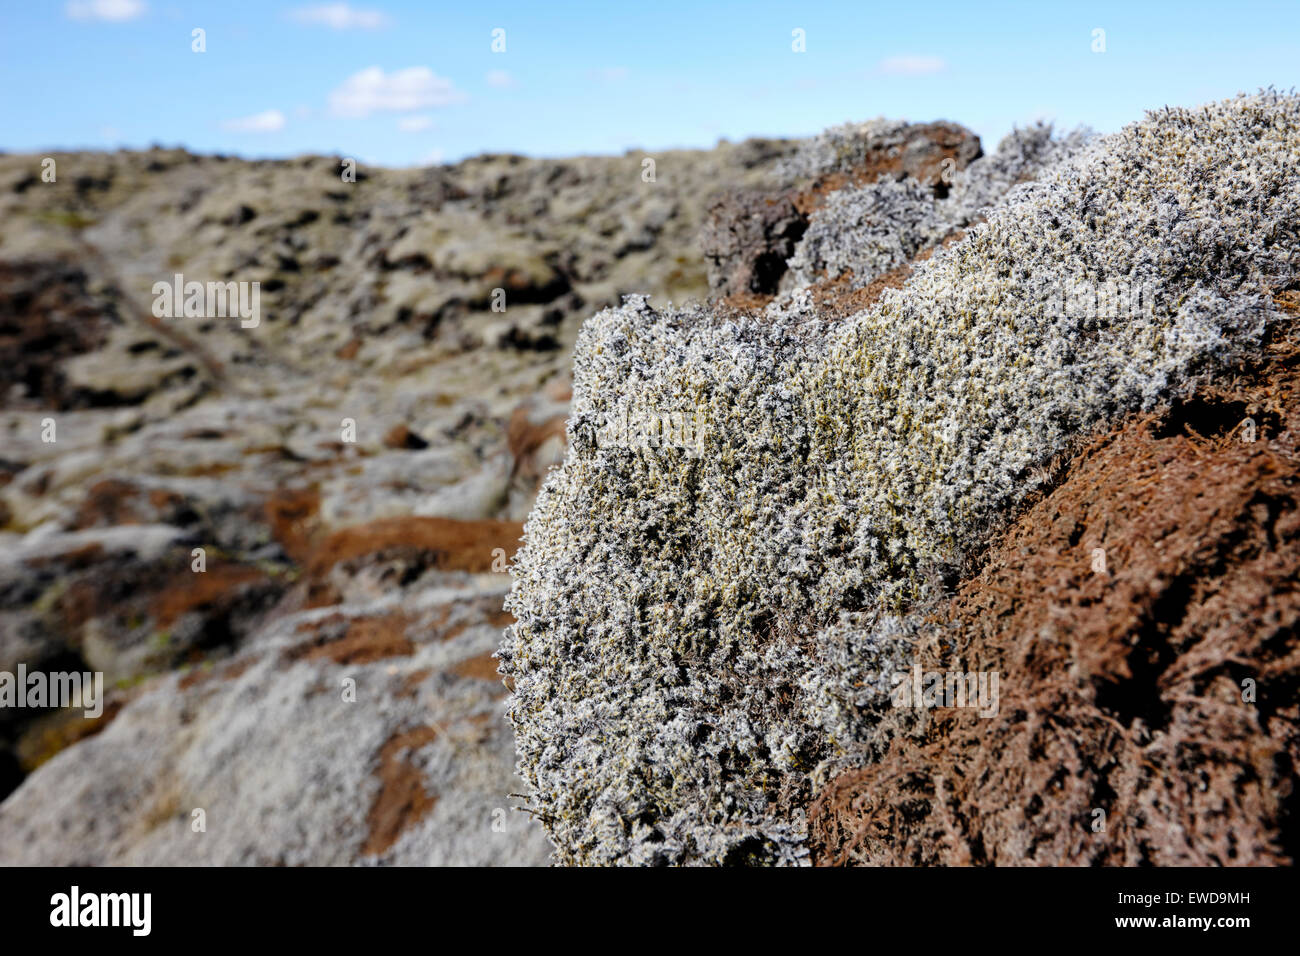 moss and moss damaged by people walking on it on southern lava fields Iceland - Stock Image